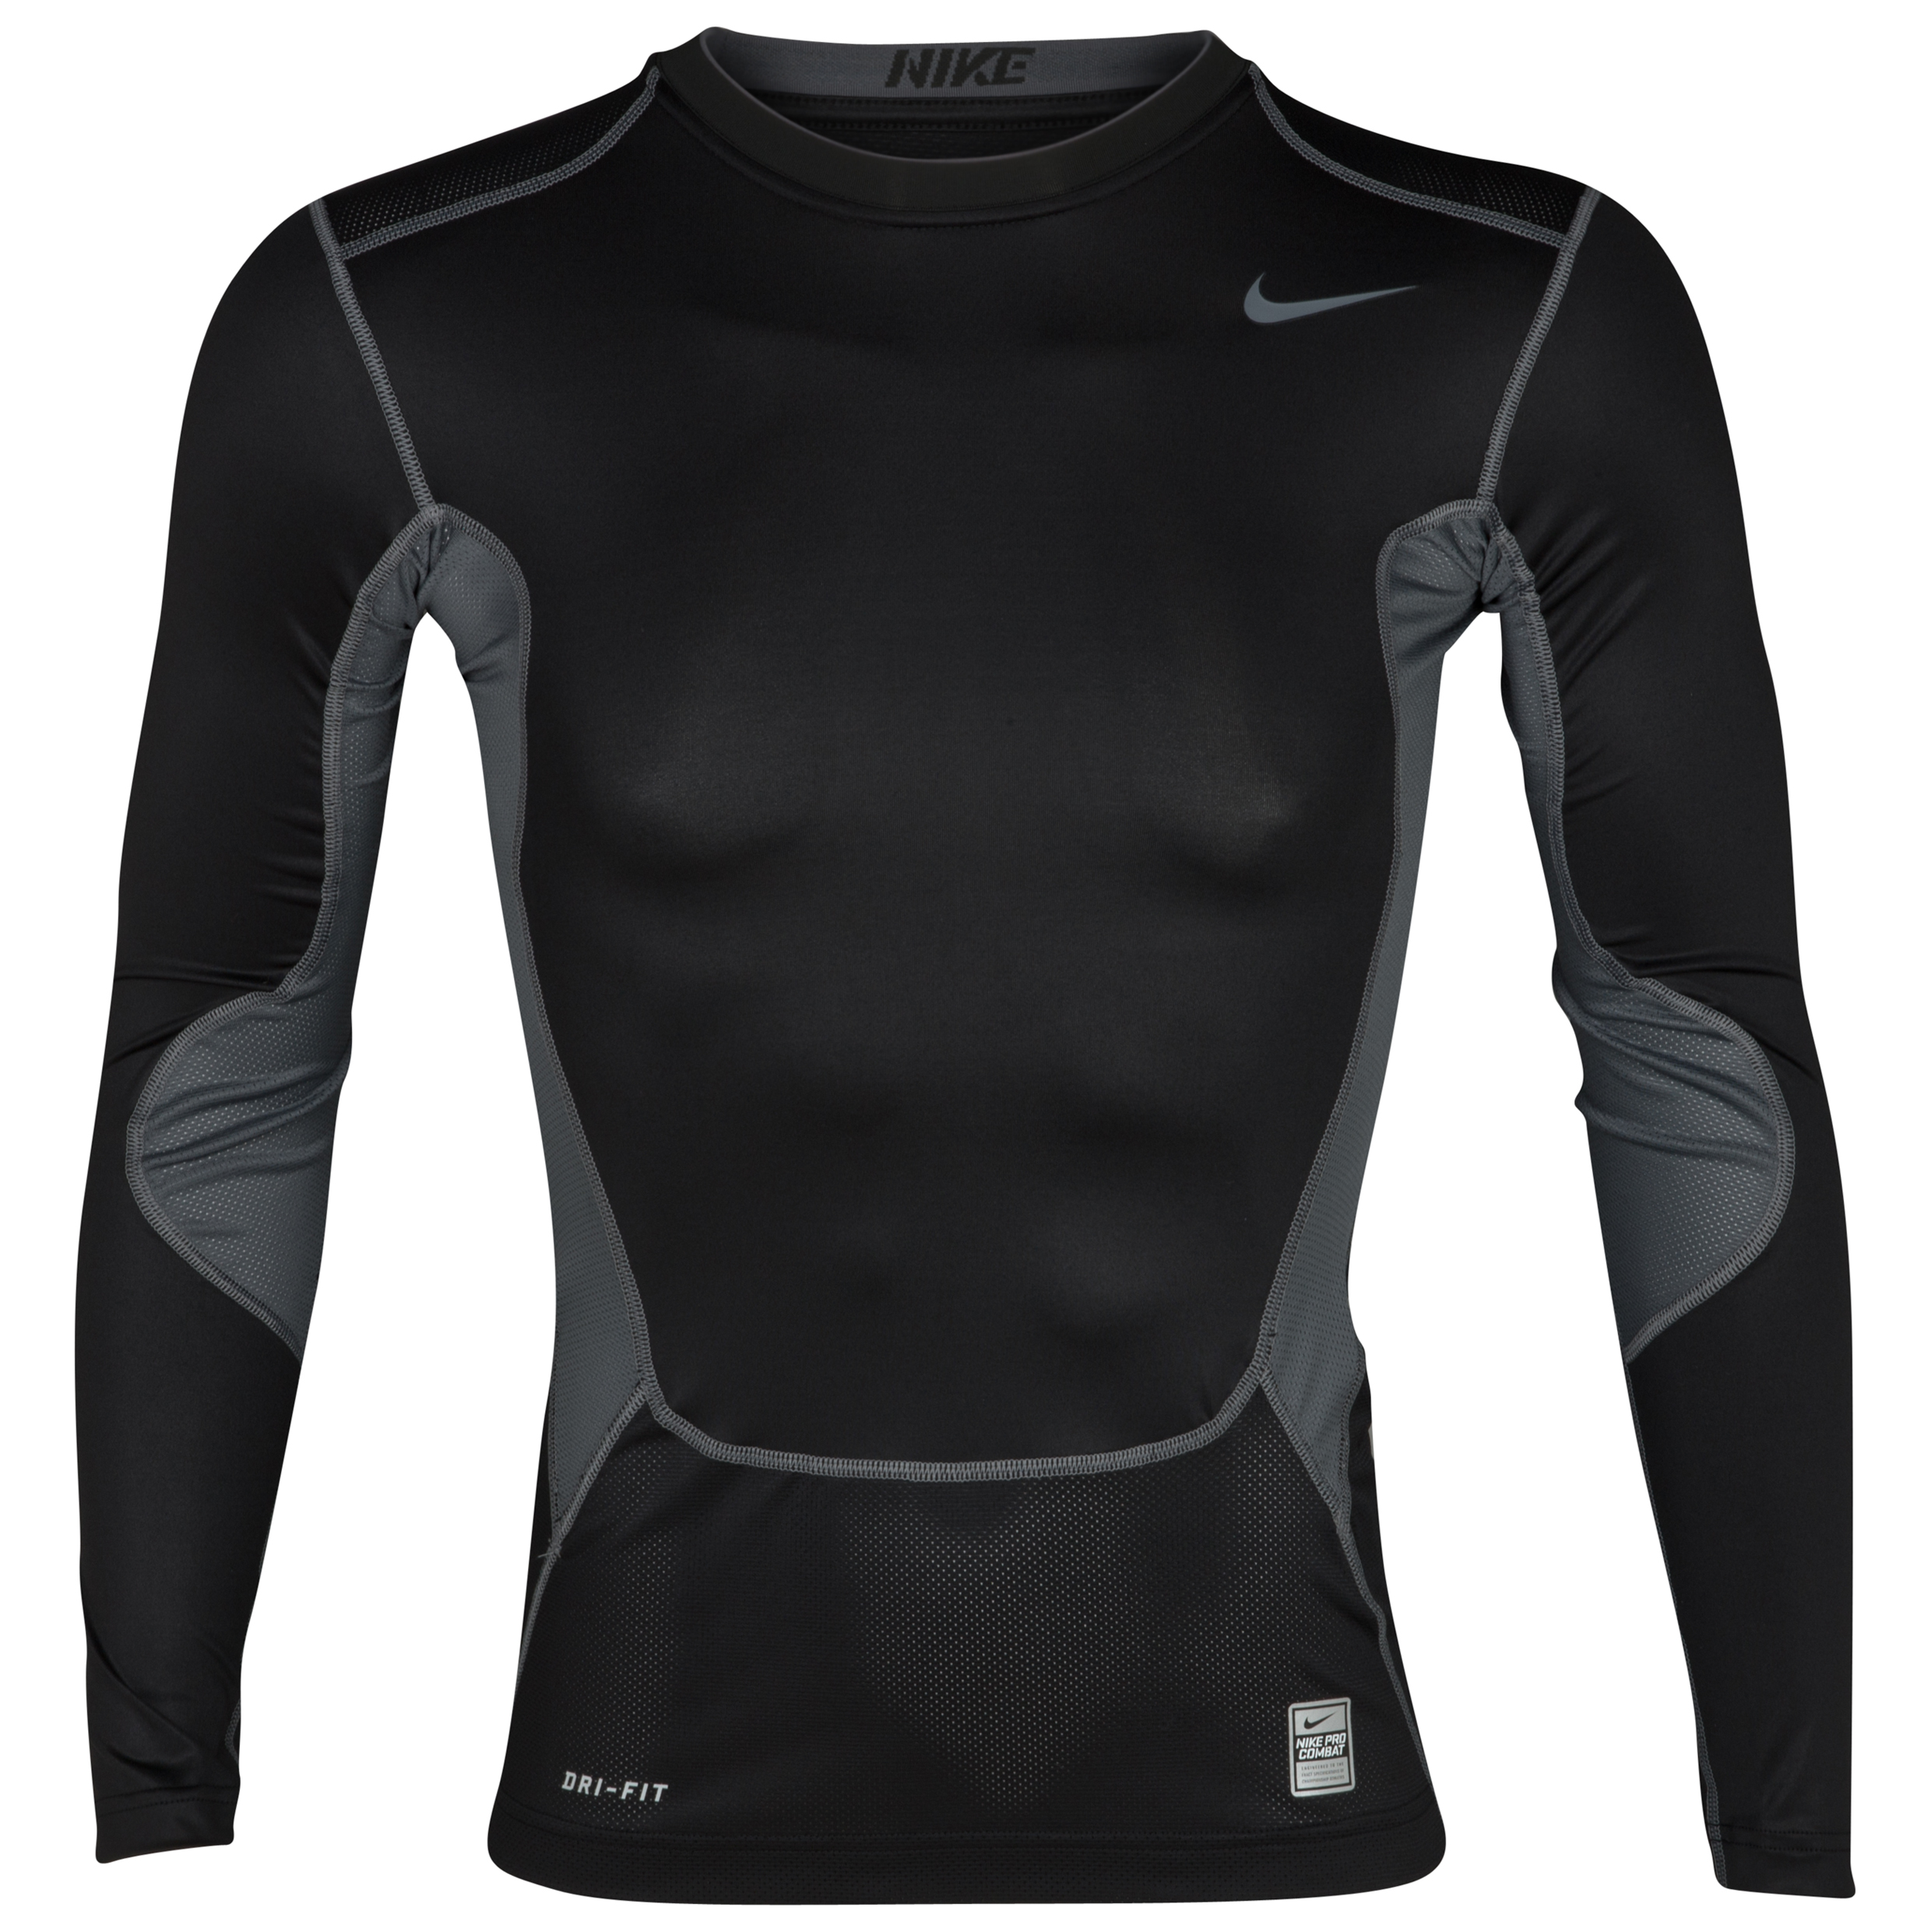 Nike Hypercool Comp Baselayer Top - Long Sleeve - Black/flint Grey